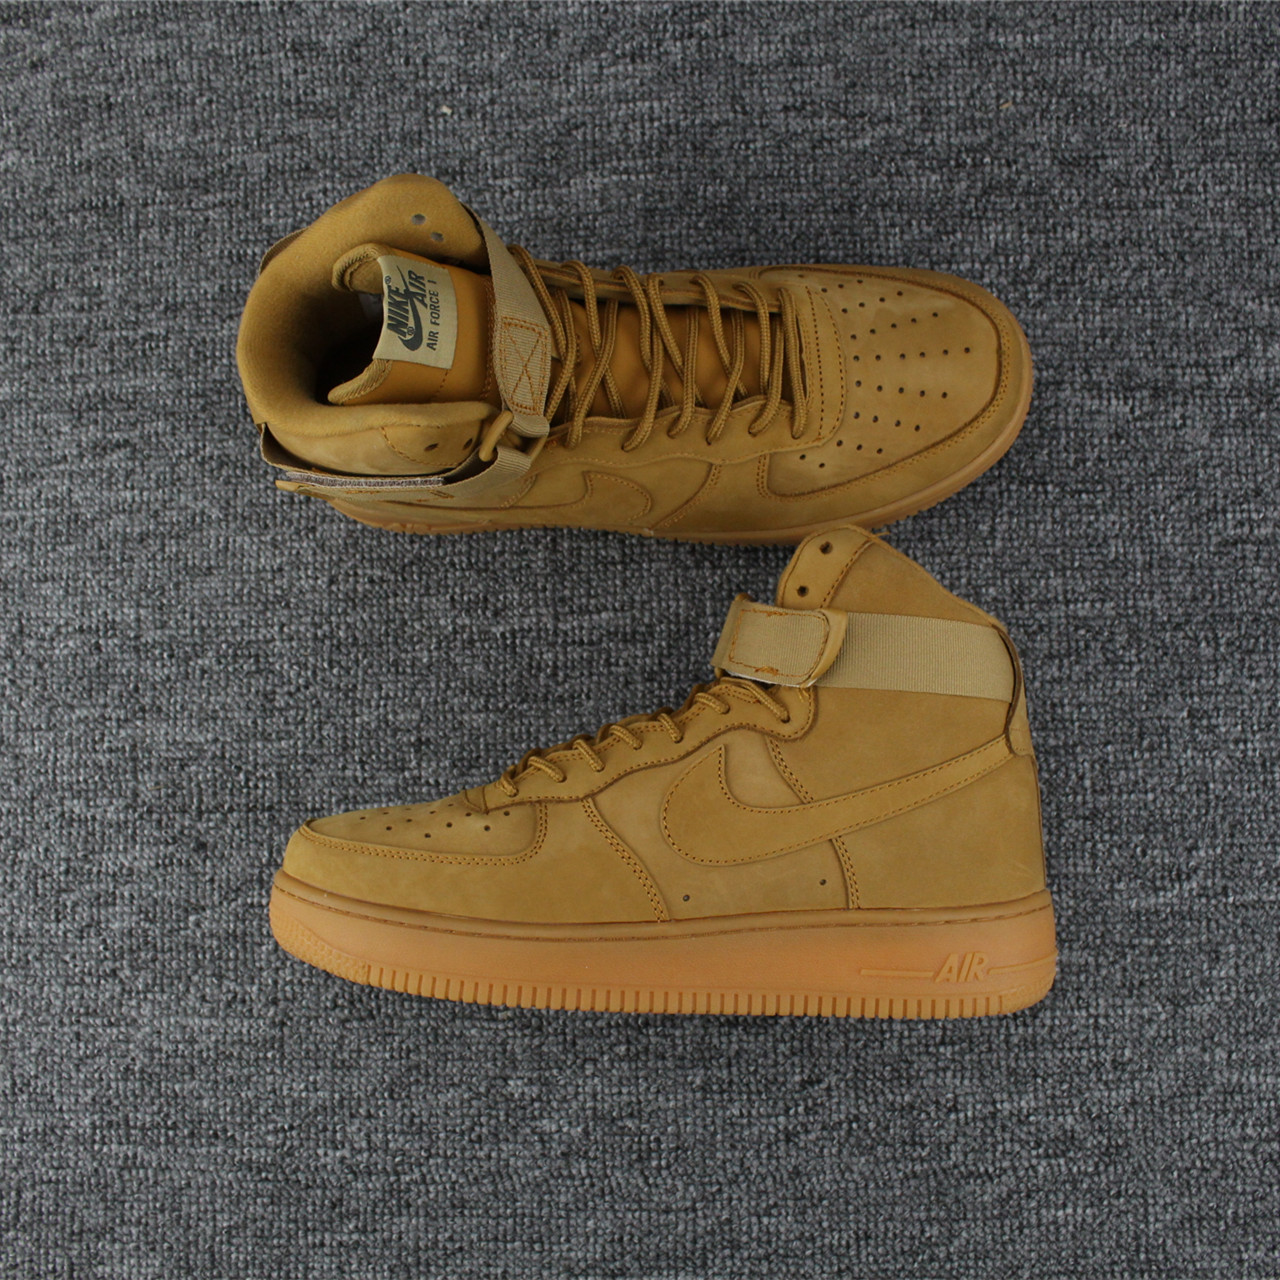 Women Nike Air Force 1 High Wheat Yellow Shoes  18kobe11210 ... 5e2b68a62a